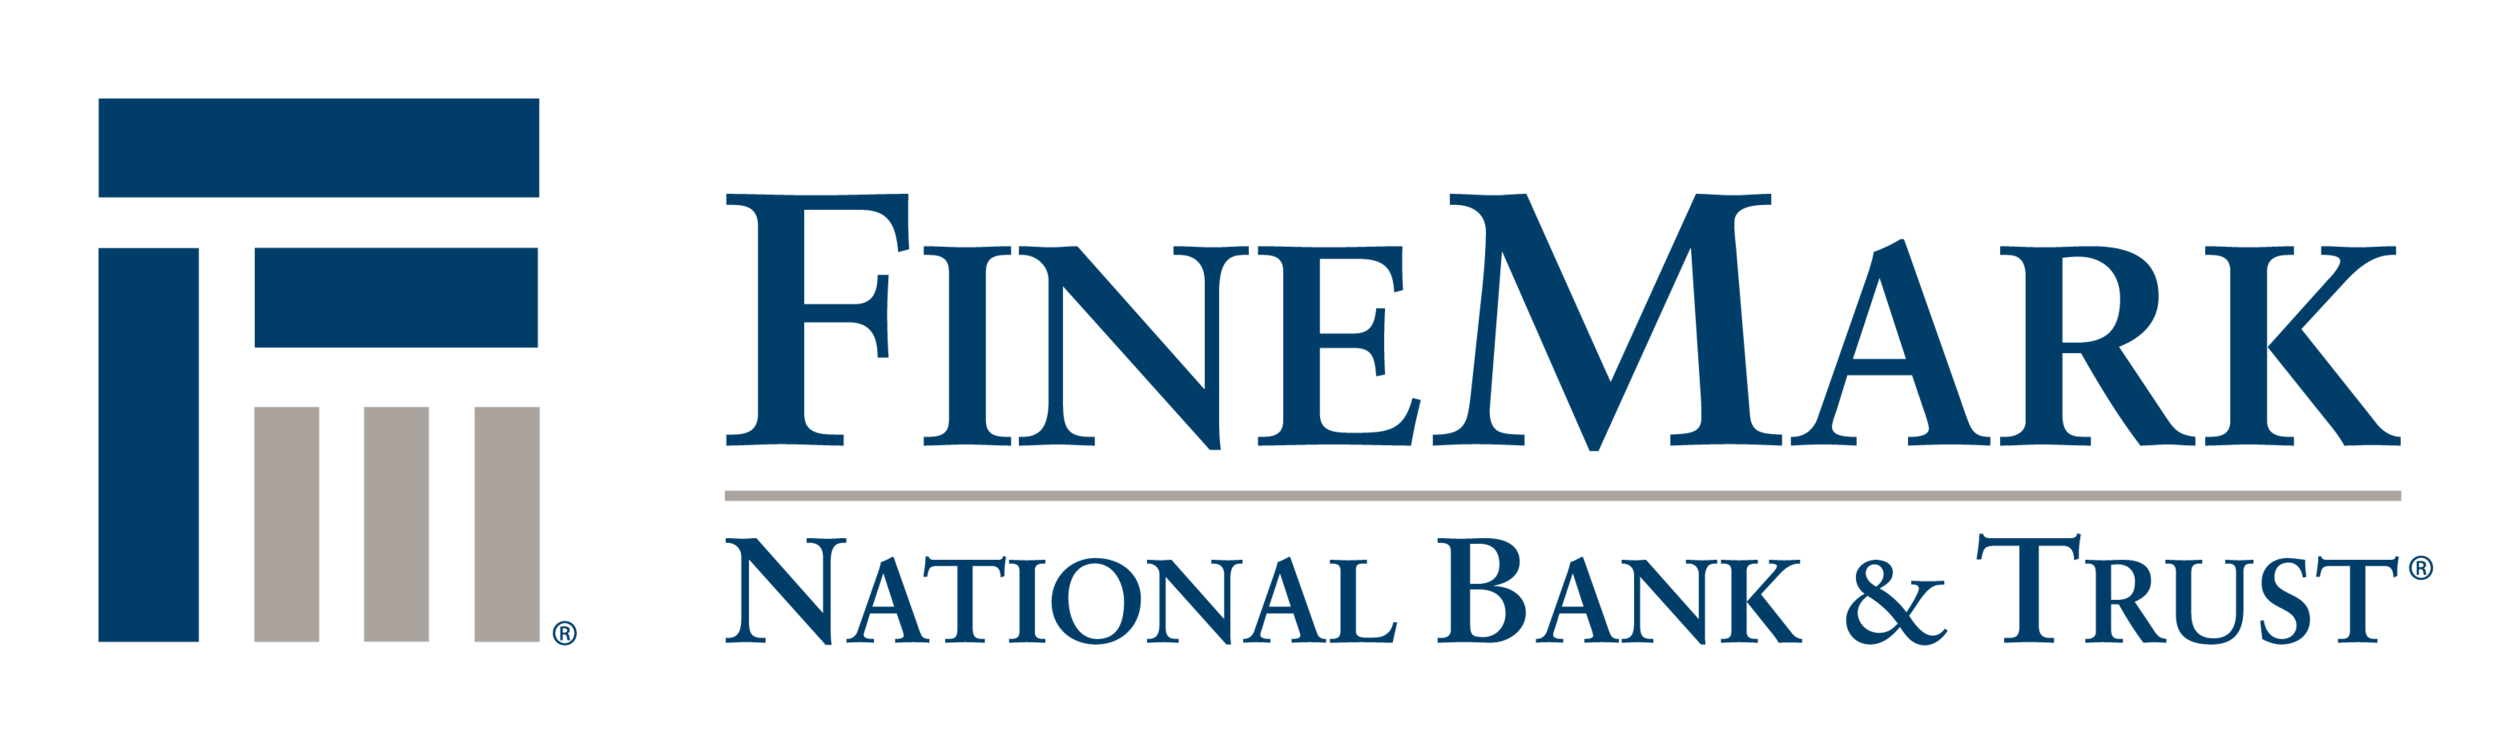 FineMark Logo.png